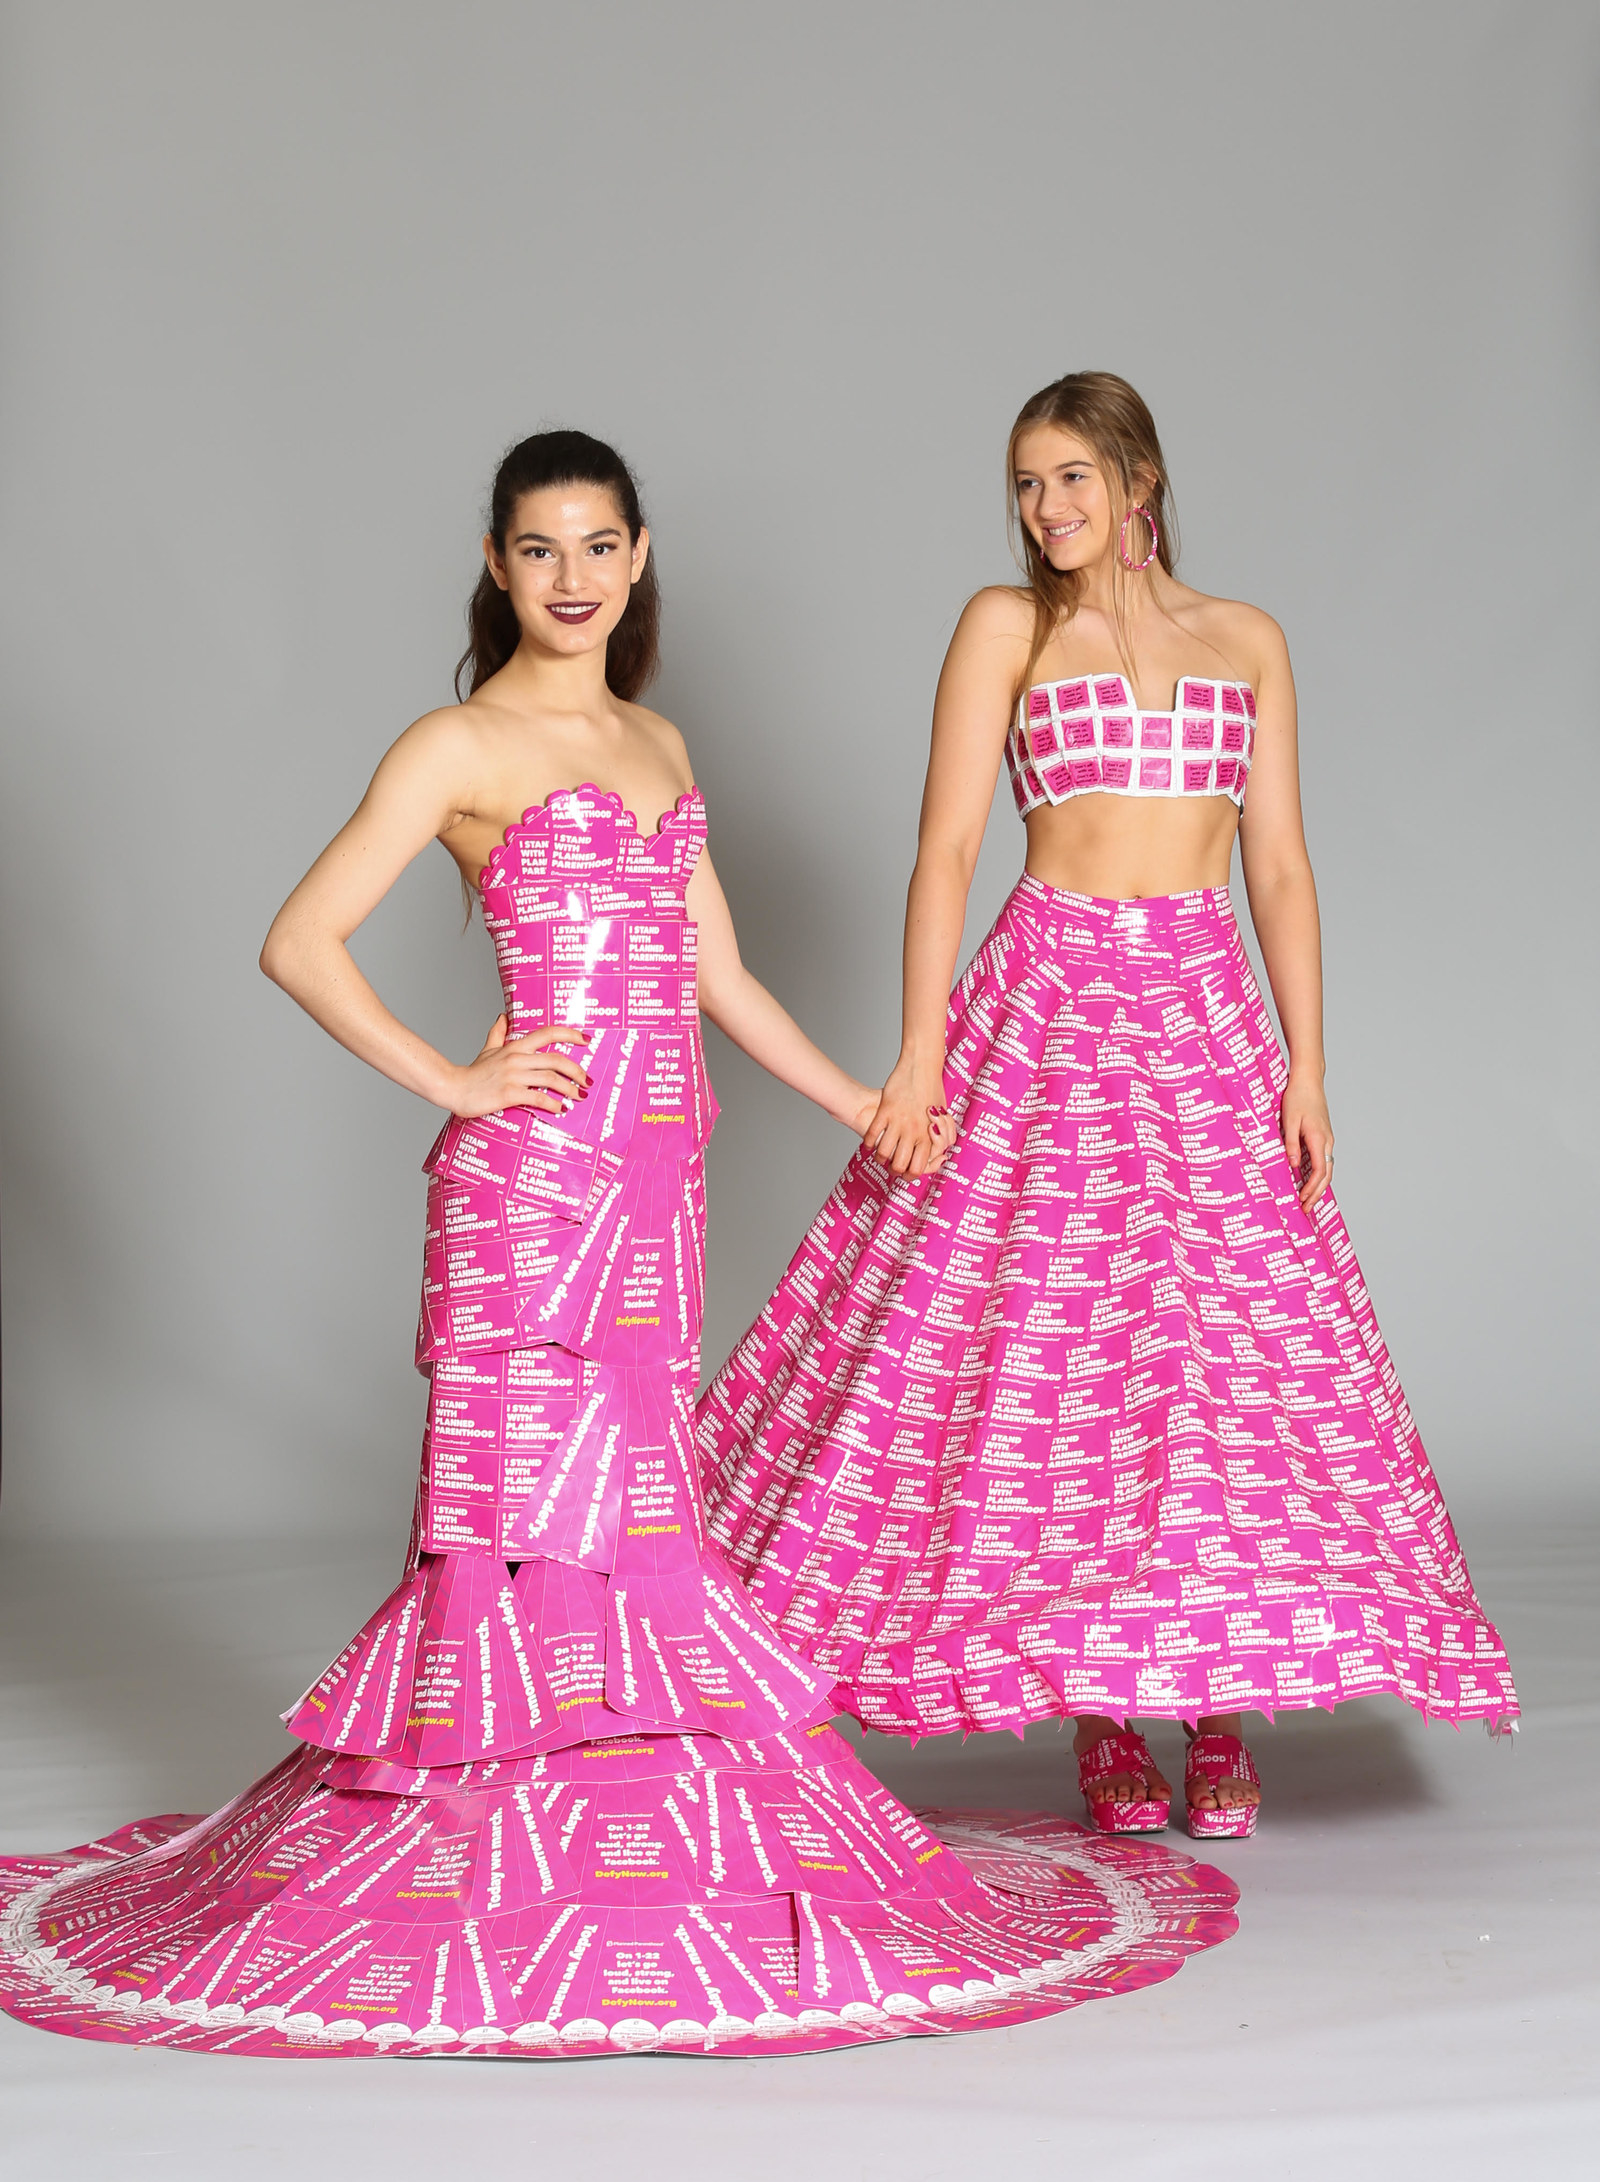 17 Best Images About Its Fashion Metro On Pinterest: These Planned Parenthood Dresses Totally Stole One High